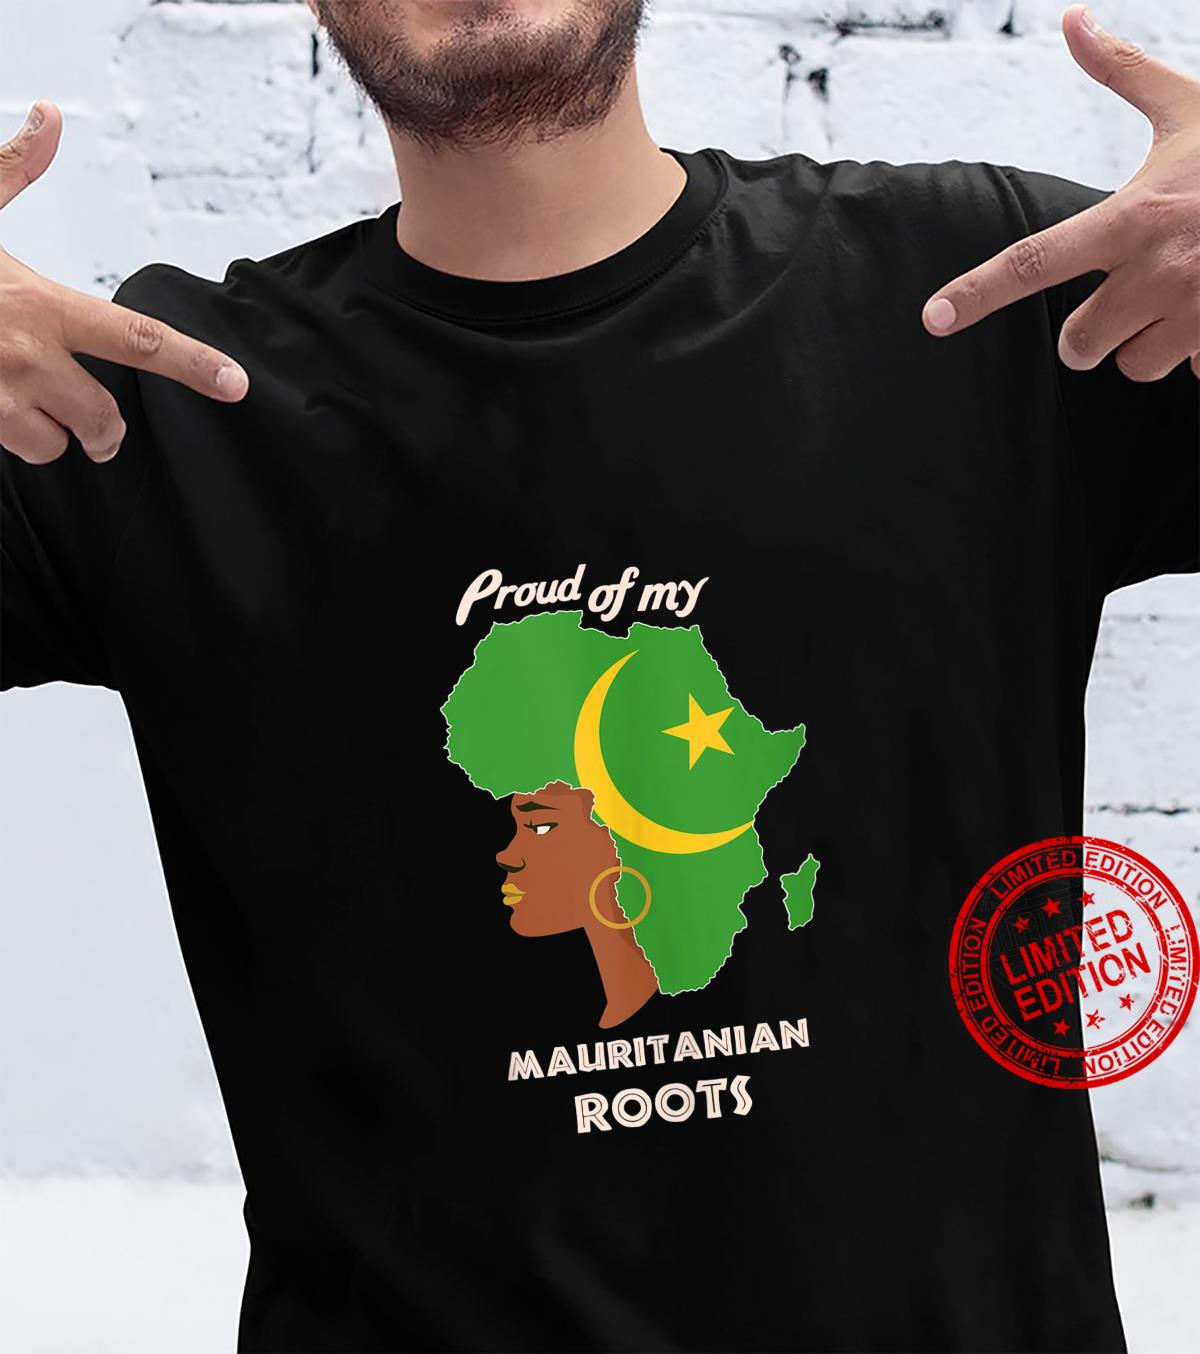 Proud Mauritanian Roots Black History Month's Shirt